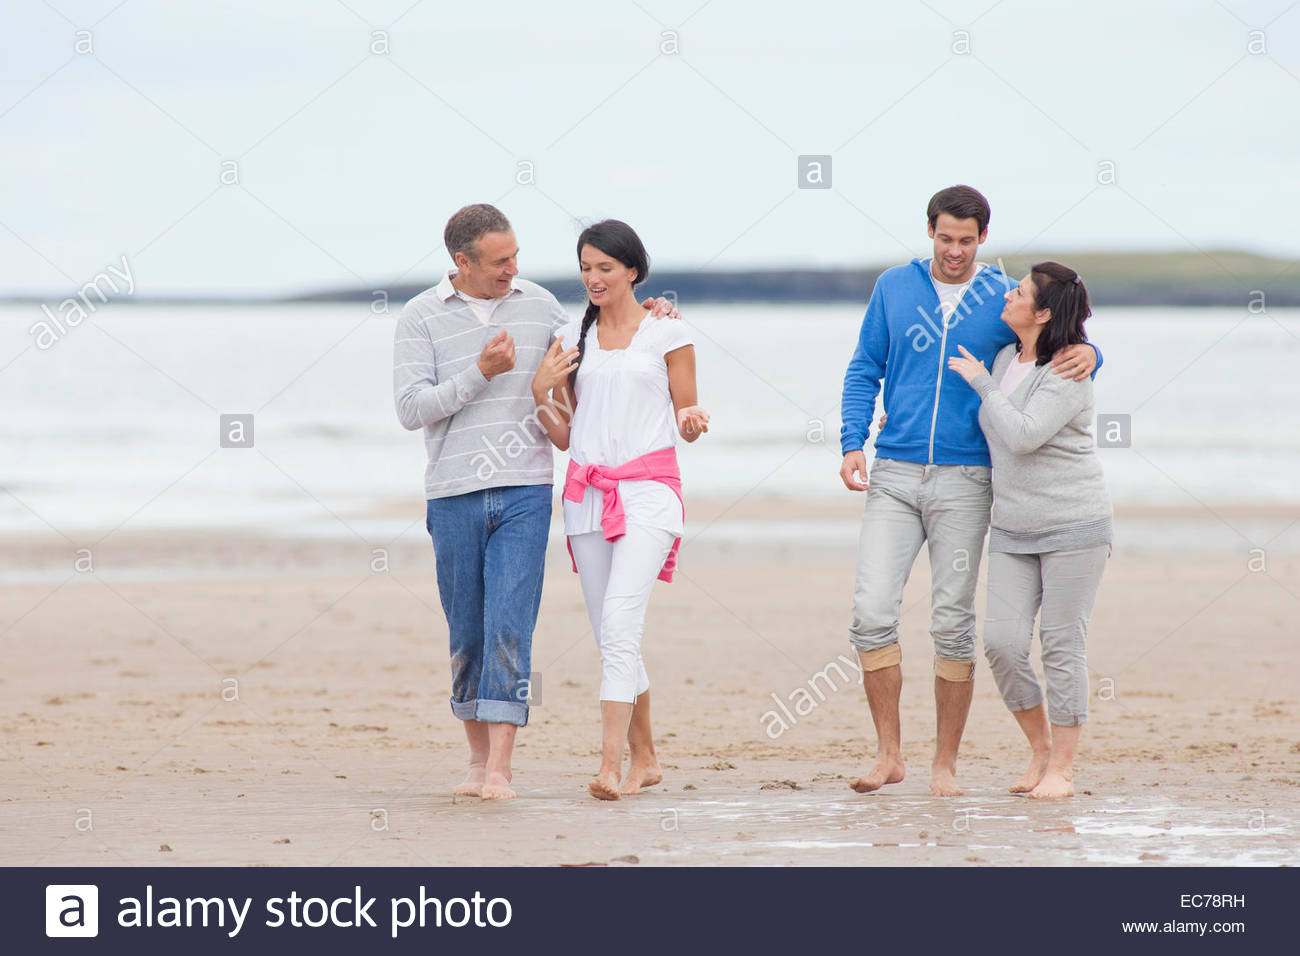 Parents and adult offspring walking together on beach - Stock Image